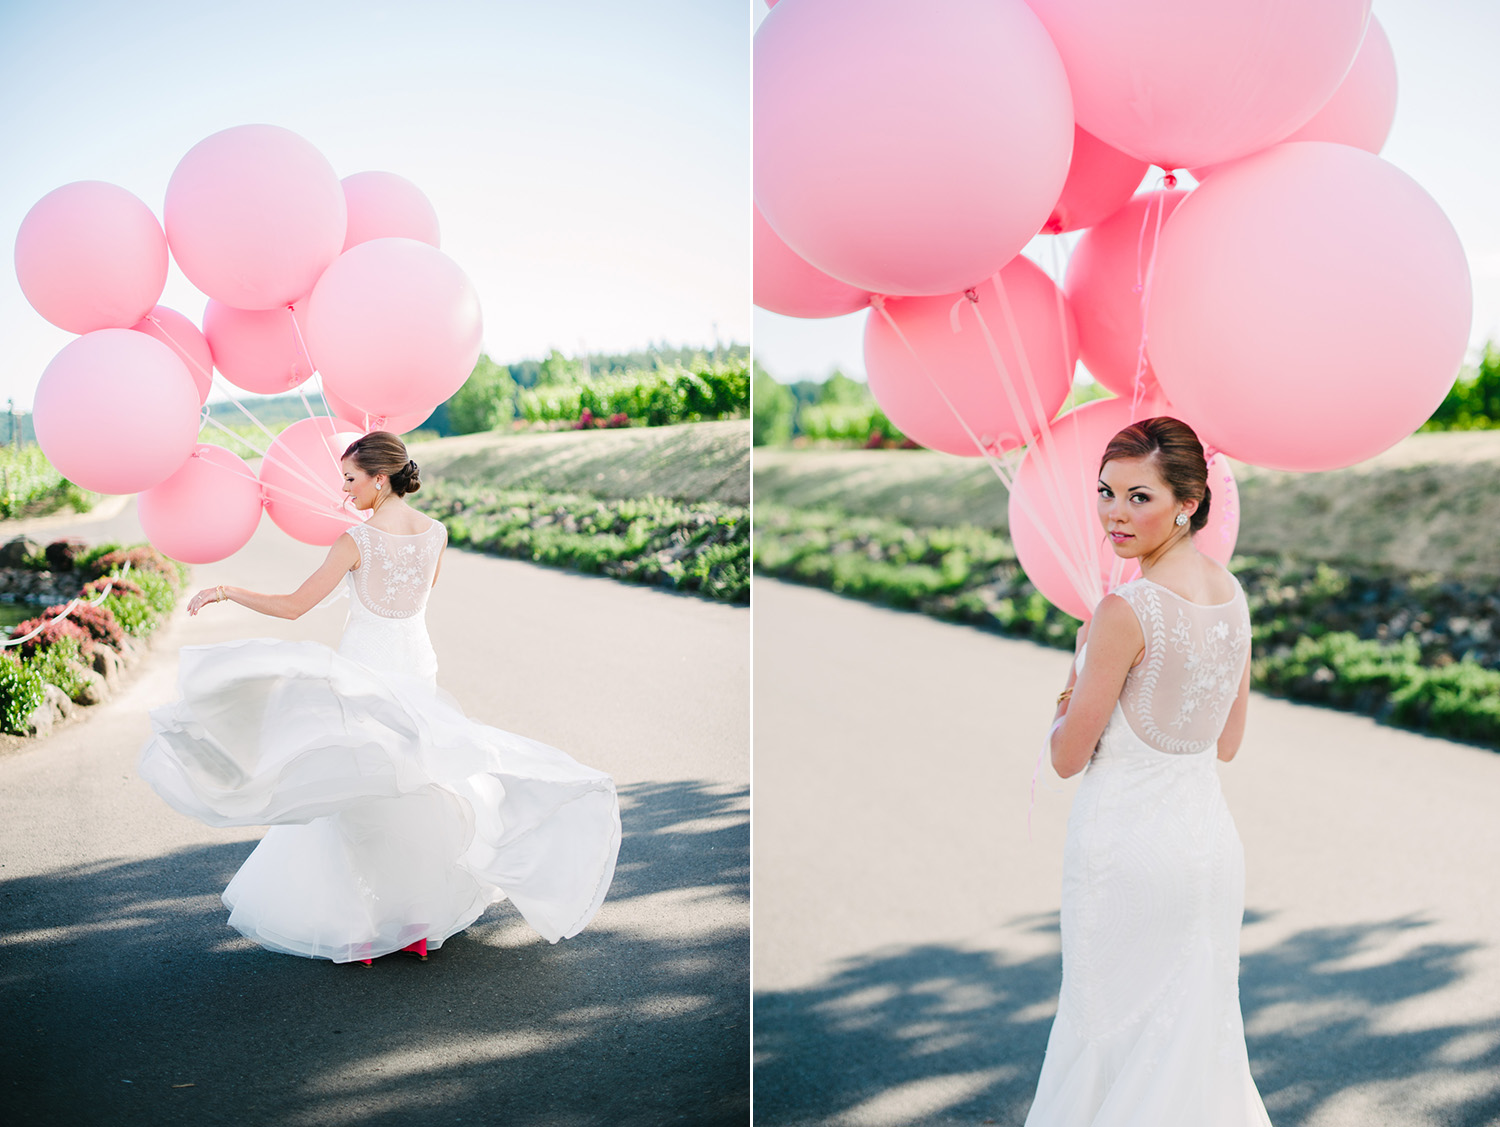 20-zenith-vineyard-wedding-portland-oregon-christa-taylor-photography.jpg